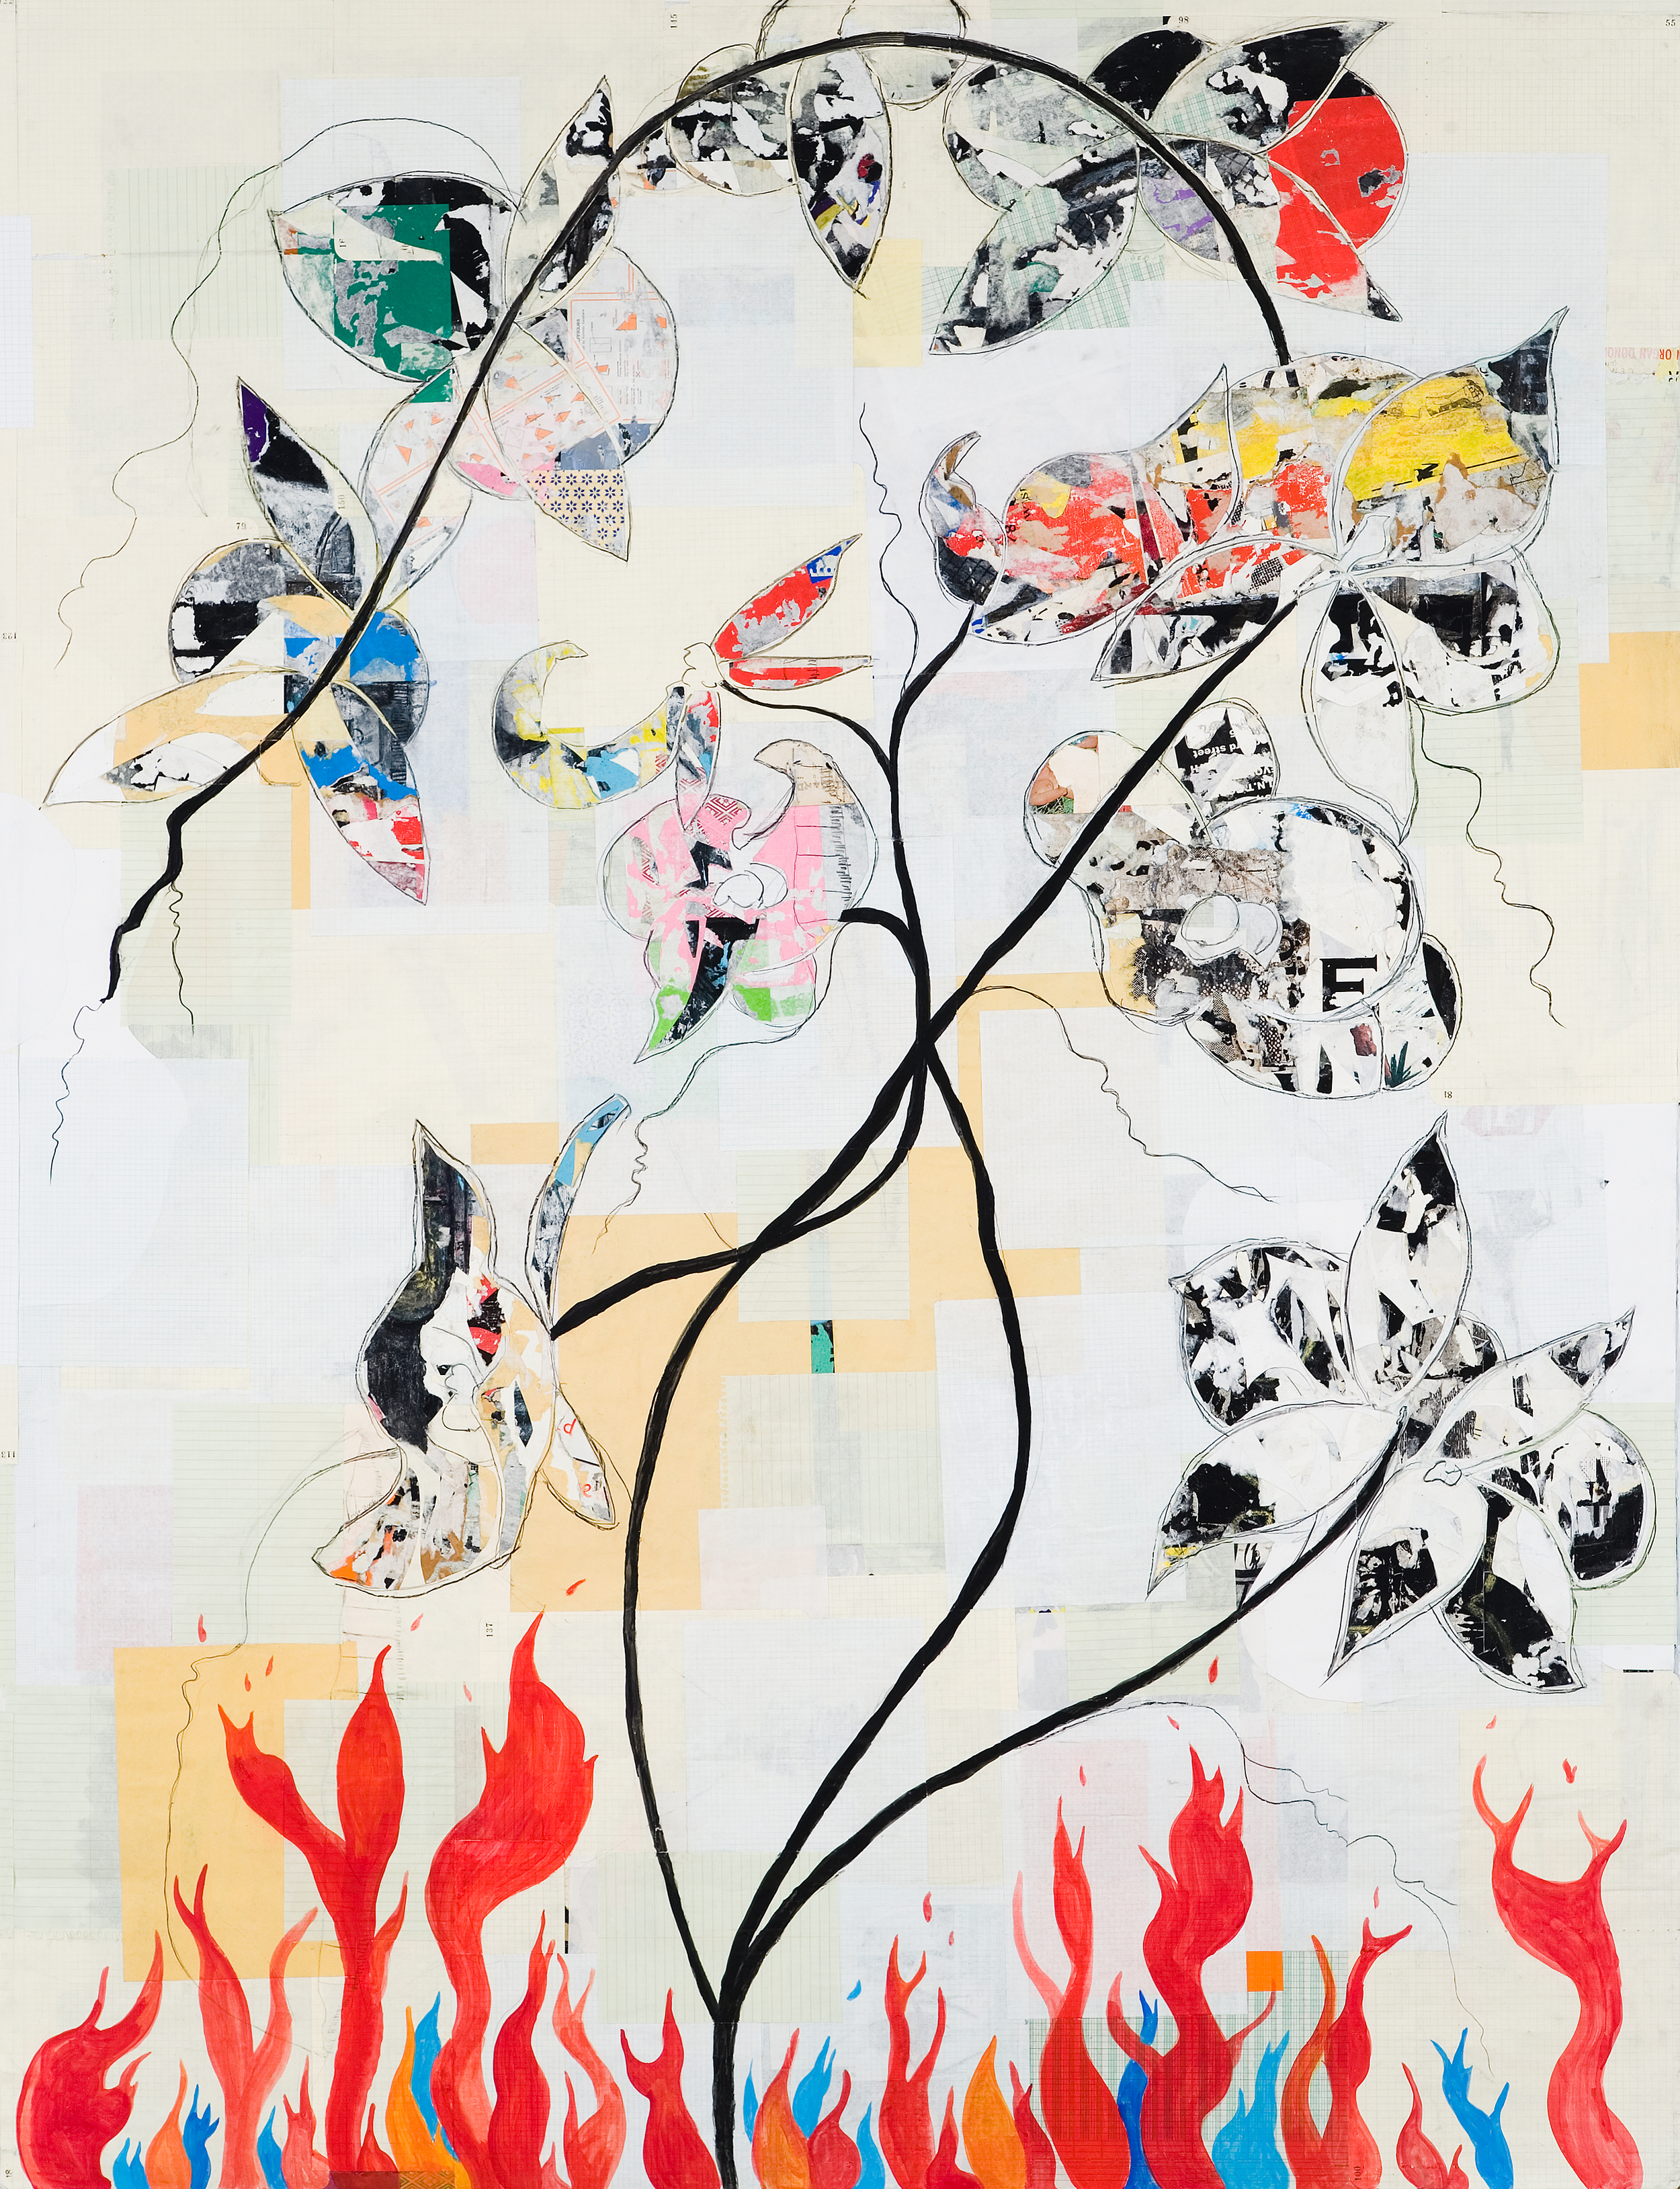 Matt Ernst Blaze Orchid, 2006 Mixed Media Collage on Canvas 50 x 75 inches